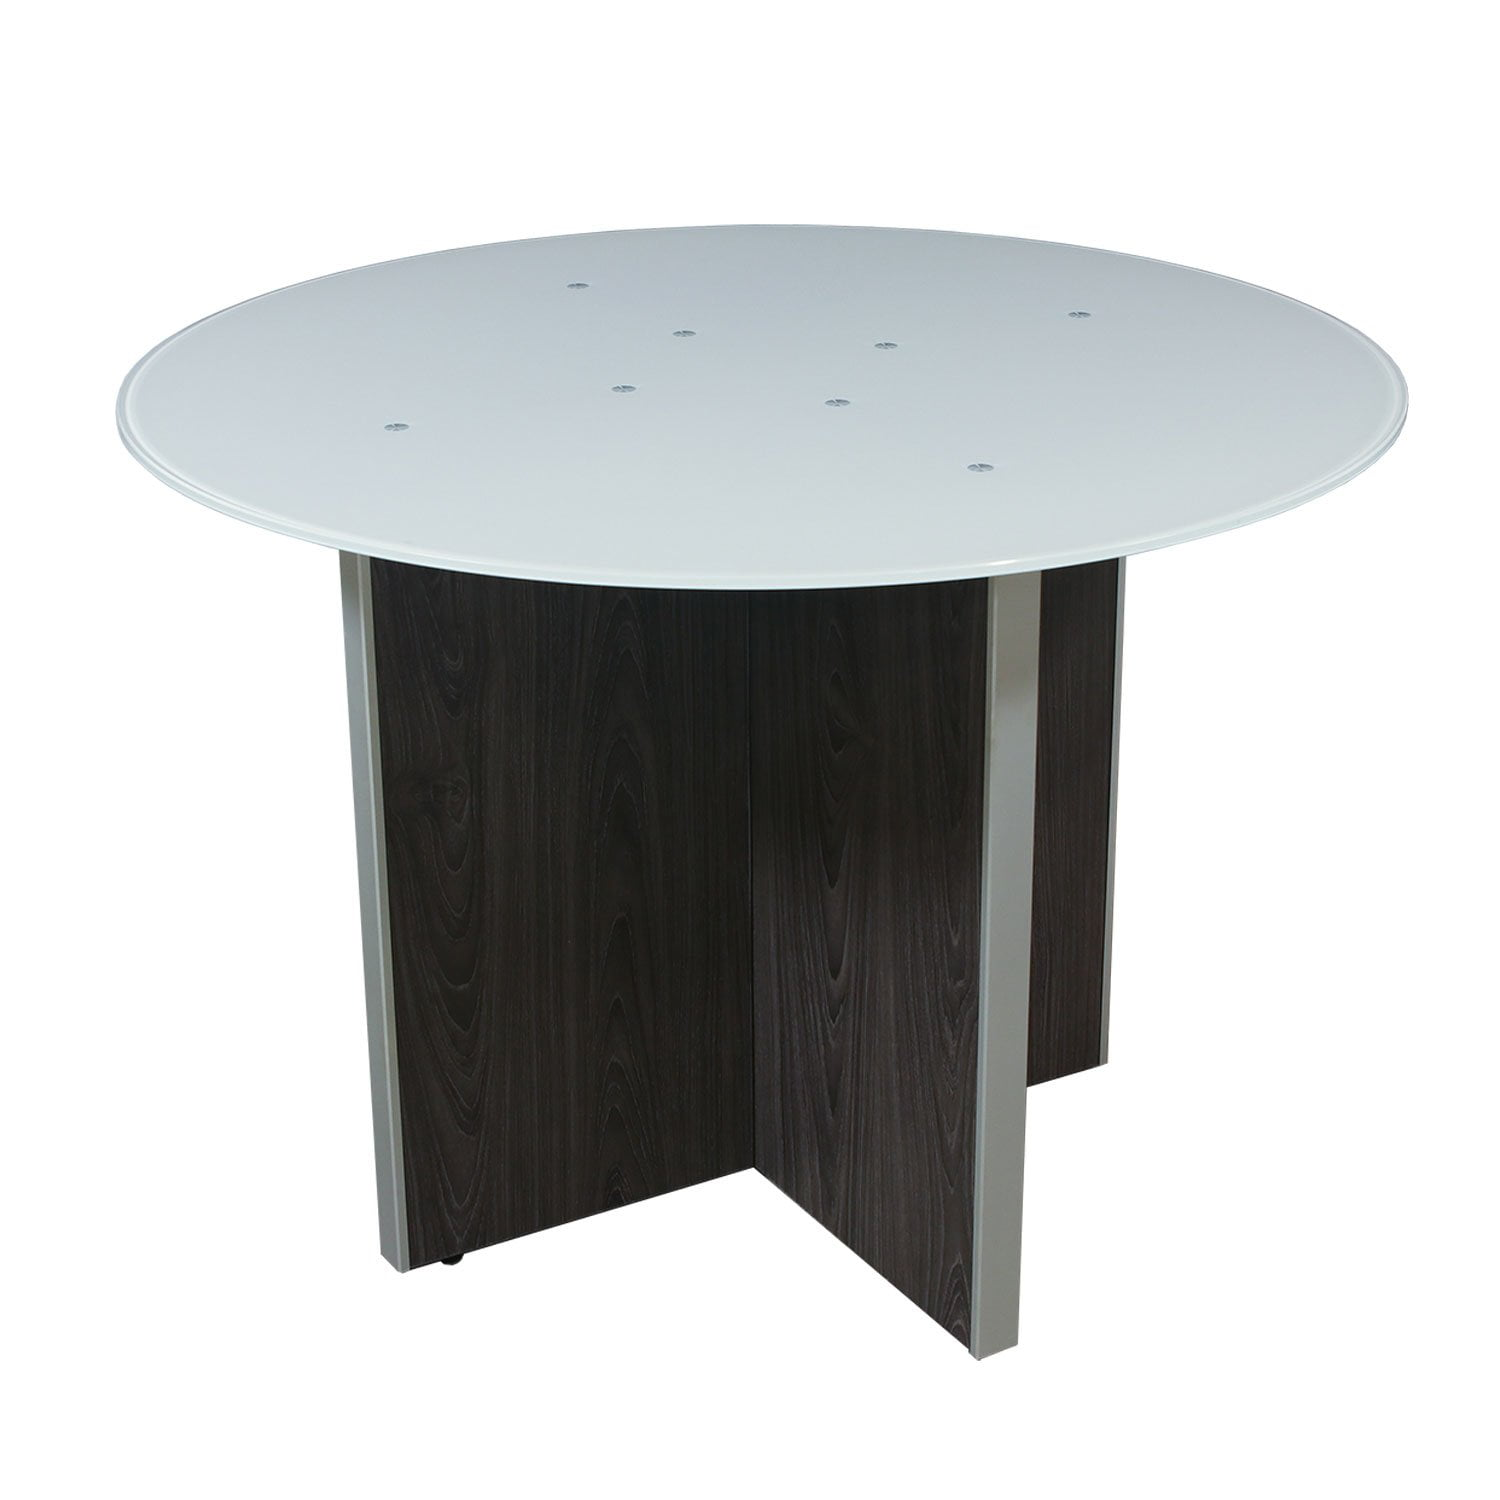 Manhattan 42 Inch Round Laminate Meeting Table with Glass Top, Cashmere Gray